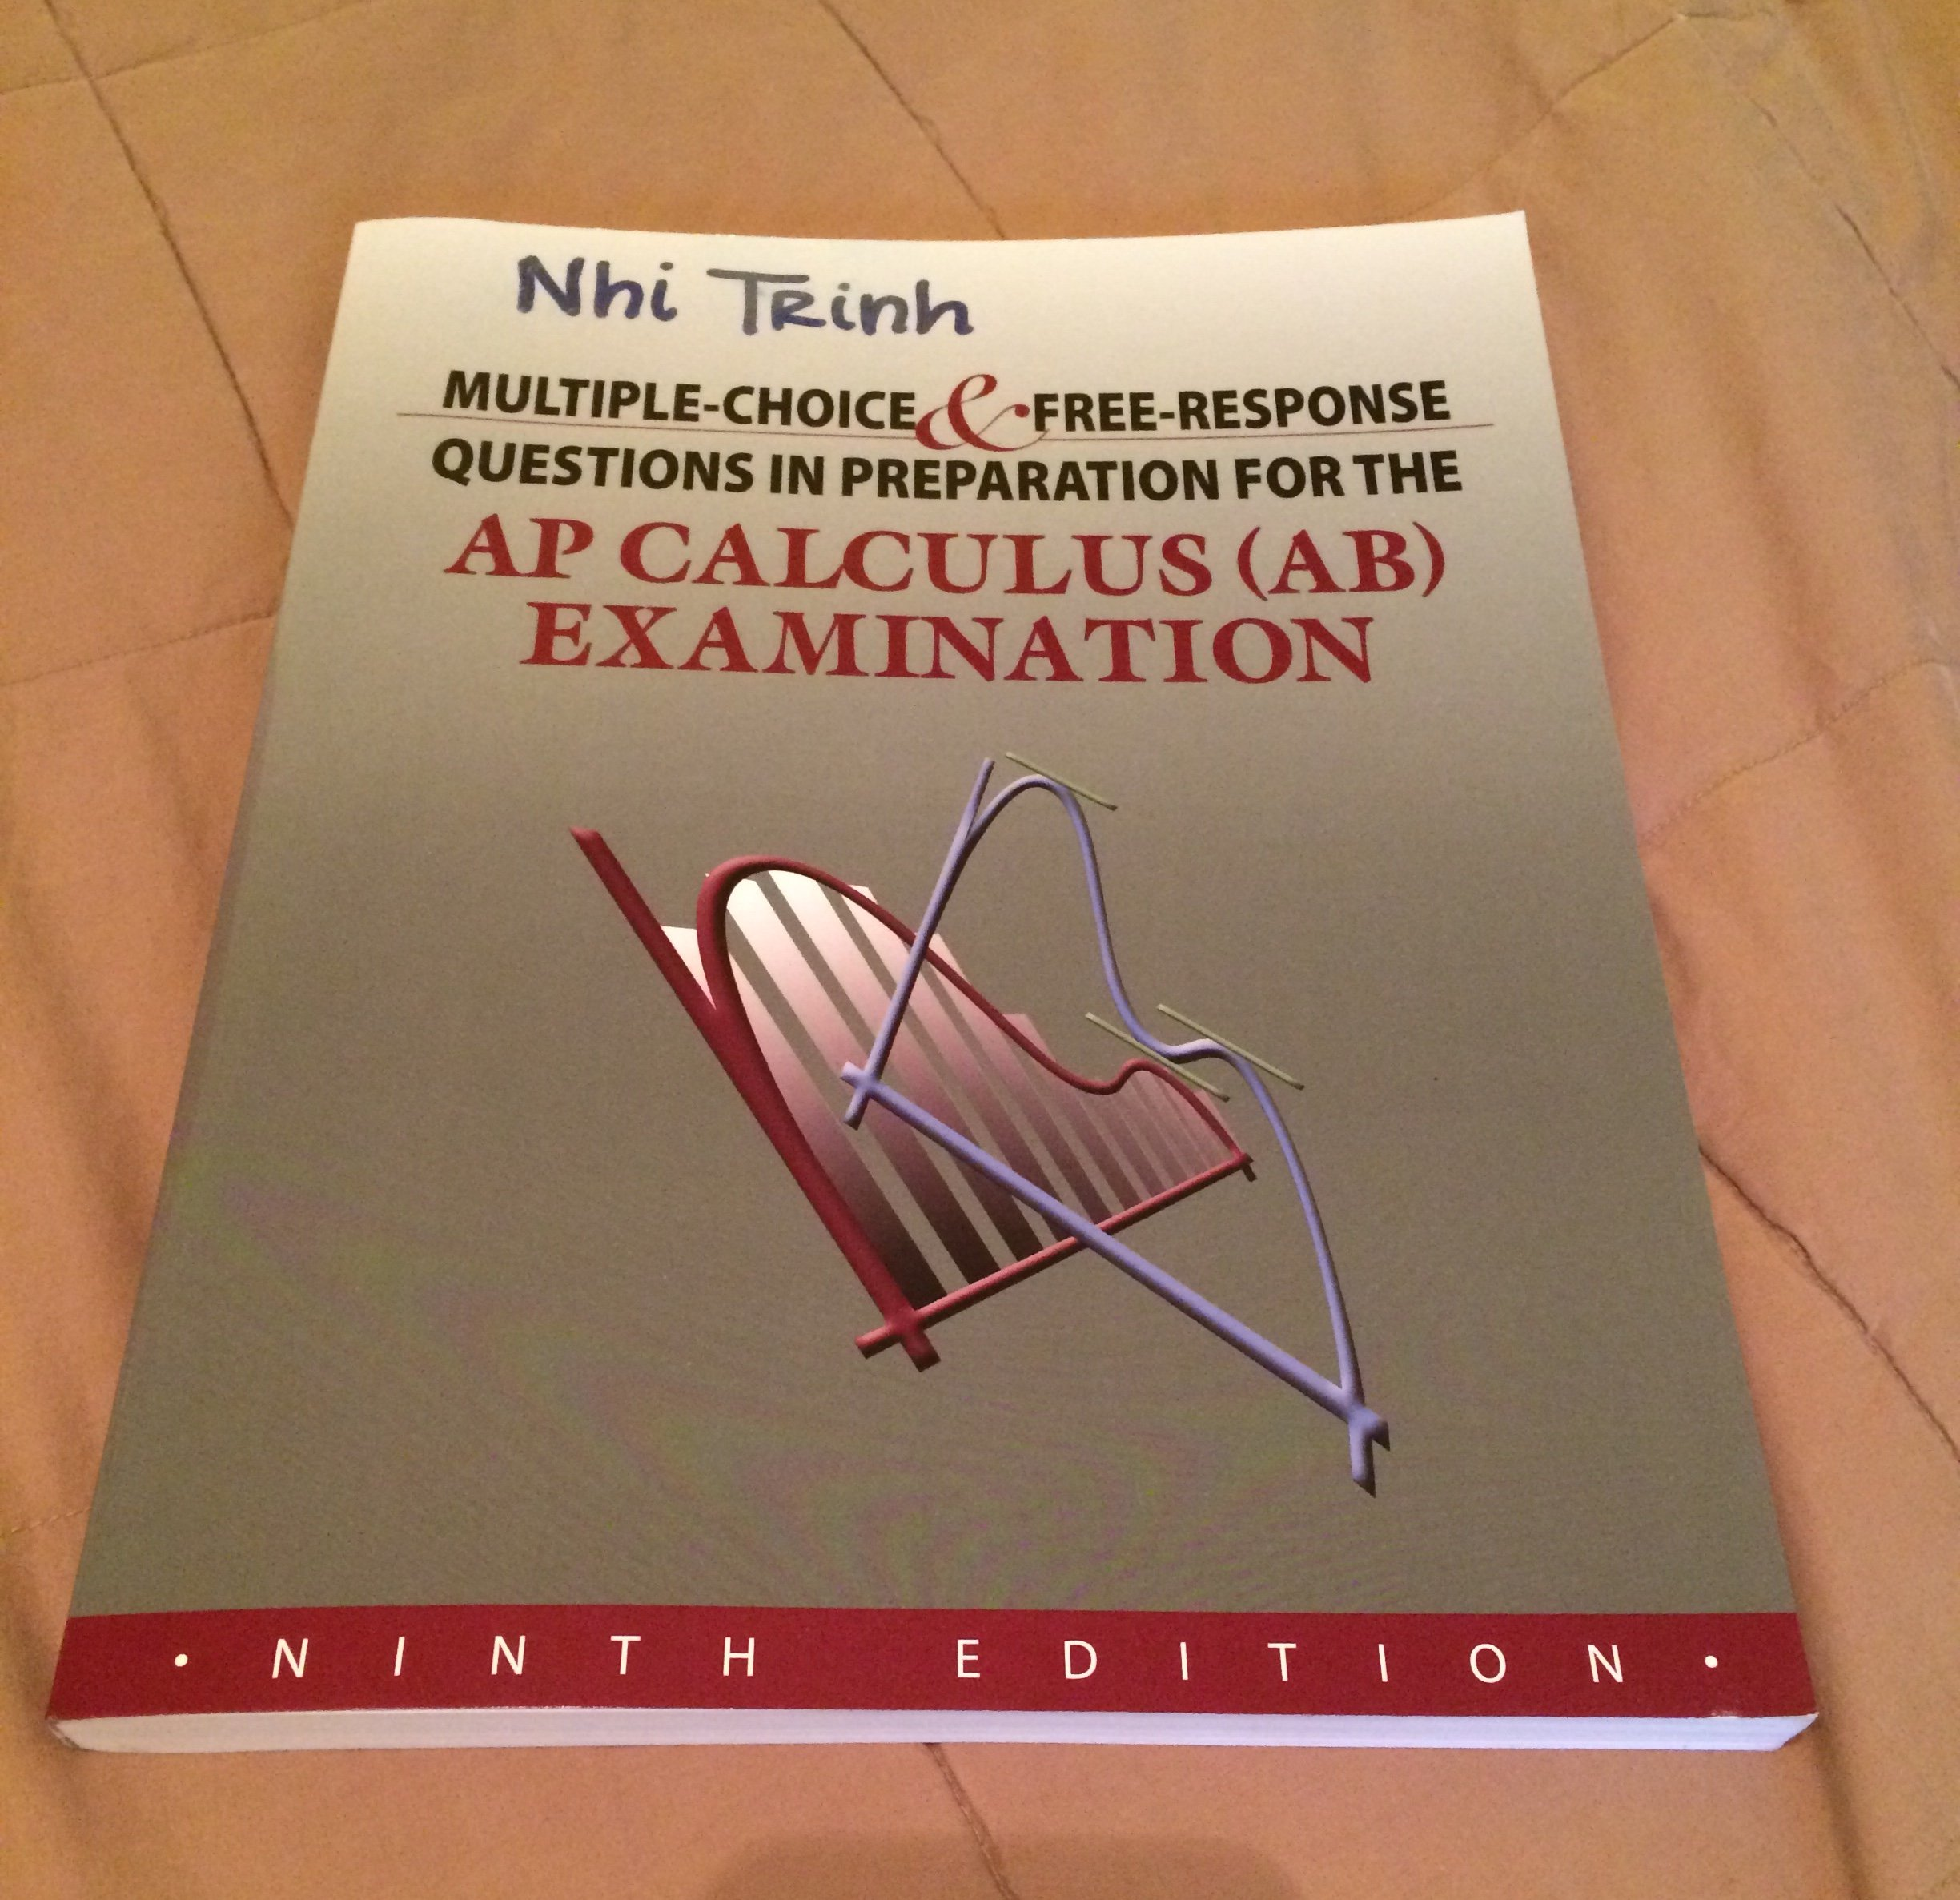 multiple choices solution manual on agamata Multiple choice questions (requires microsoft office viewer) solutions manual (requires microsoft word viewer) lecture powerpoint slides (requires microsoft office viewer) multiple choice quizzes with answers (requires microsoft office viewer.